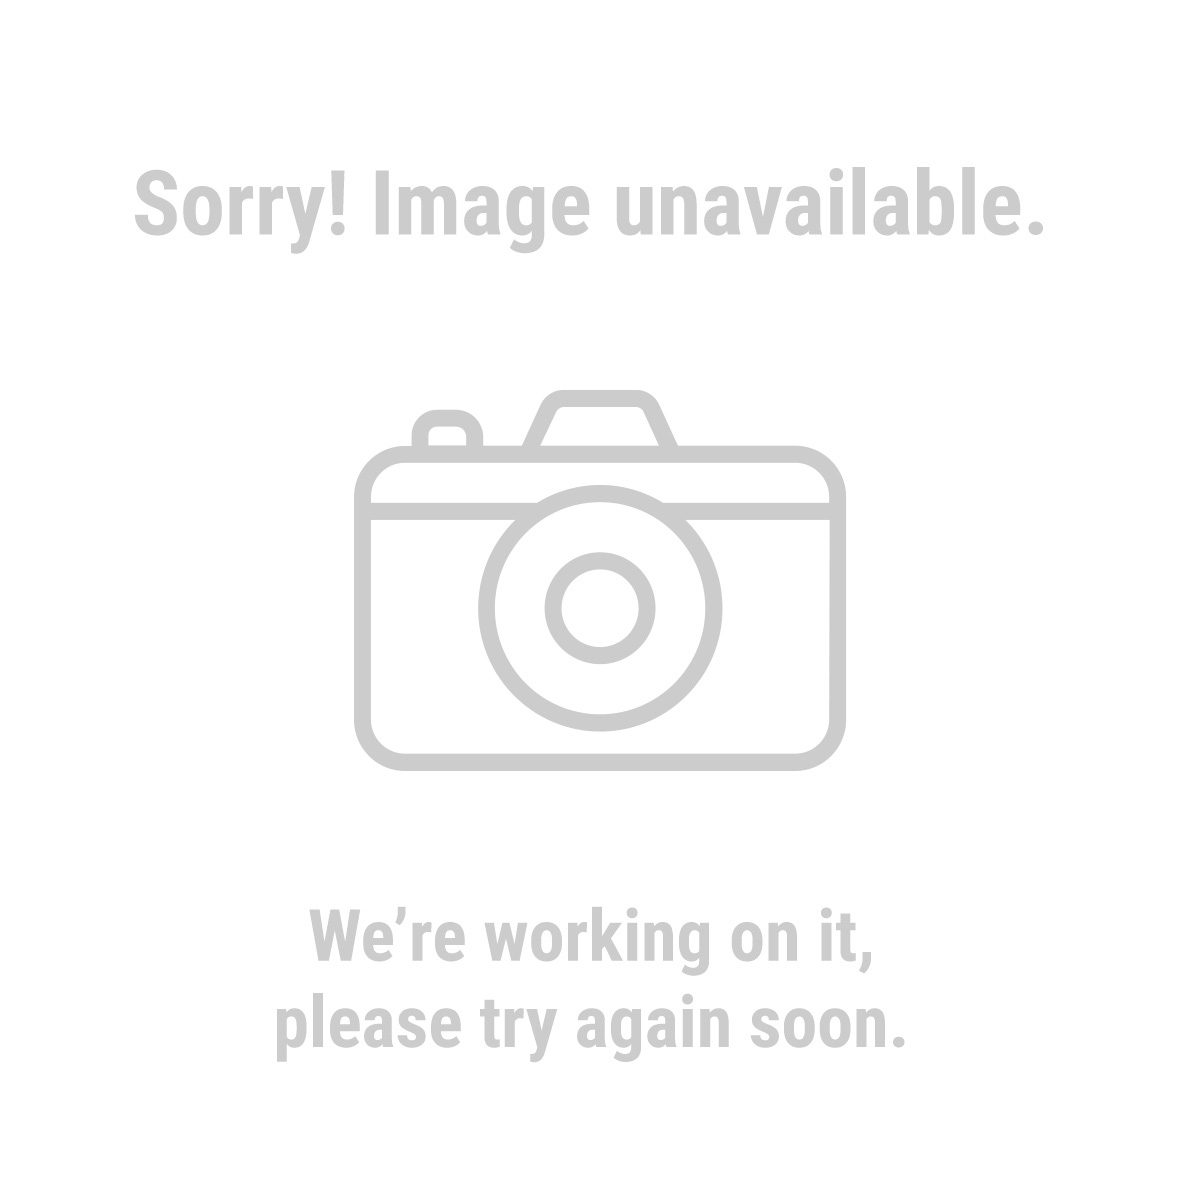 Central Forge® 468 12 Piece Needle File Set